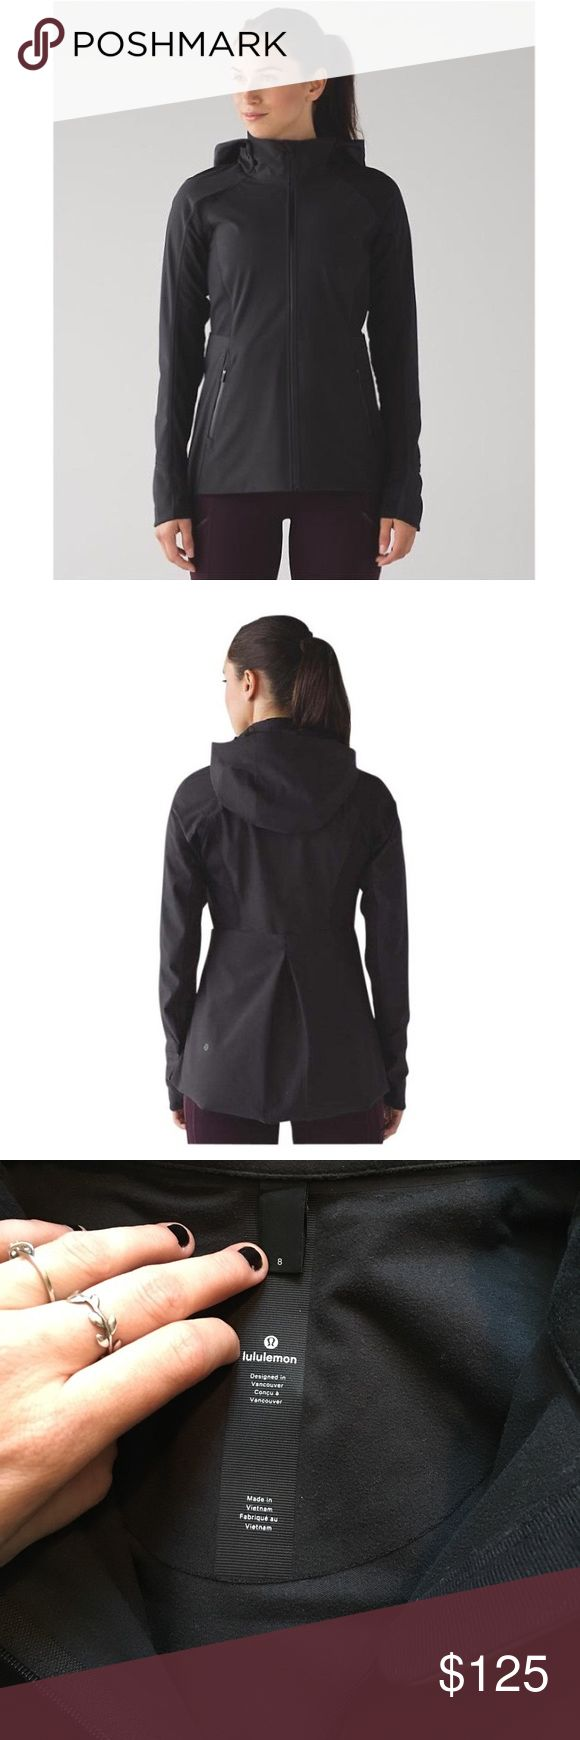 Sleet Sprinter Jacket by LuLulemon New without the tags sleet sprinter jacket from Lululemon Athletica. It's black, waterproof and adorable. I bought it online and 8 was the last in stock- so it's way too small for me but in perfect condition. The hood is removable and it has many pockets for on the go storage! lululemon athletica Jackets & Coats